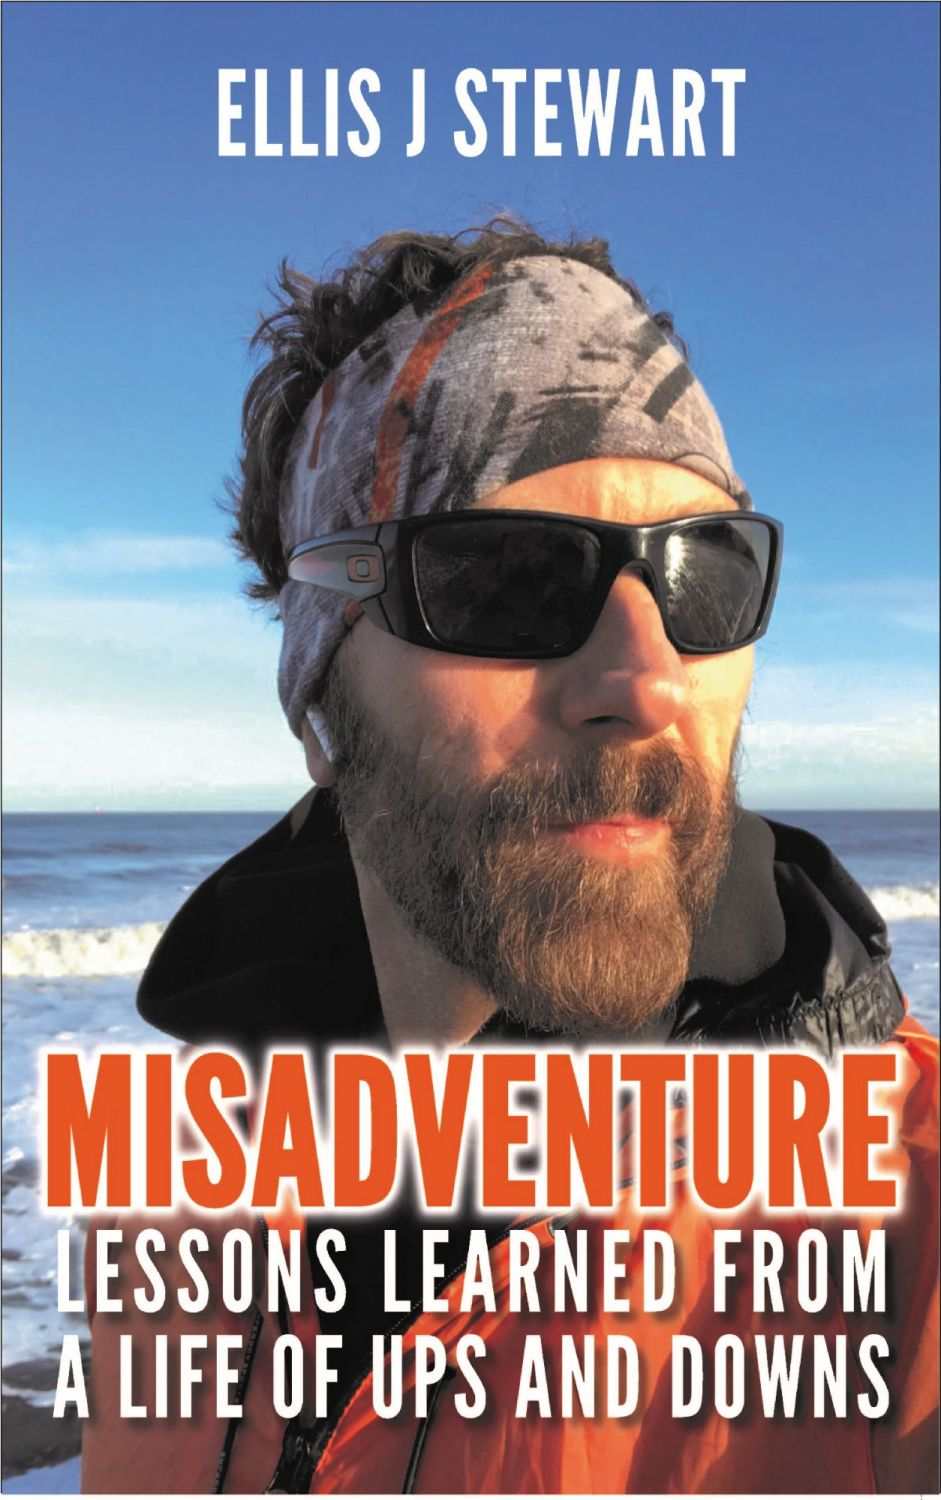 Misadventure. Lessons Learned From a Life of Ups and Downs. Hardback editio